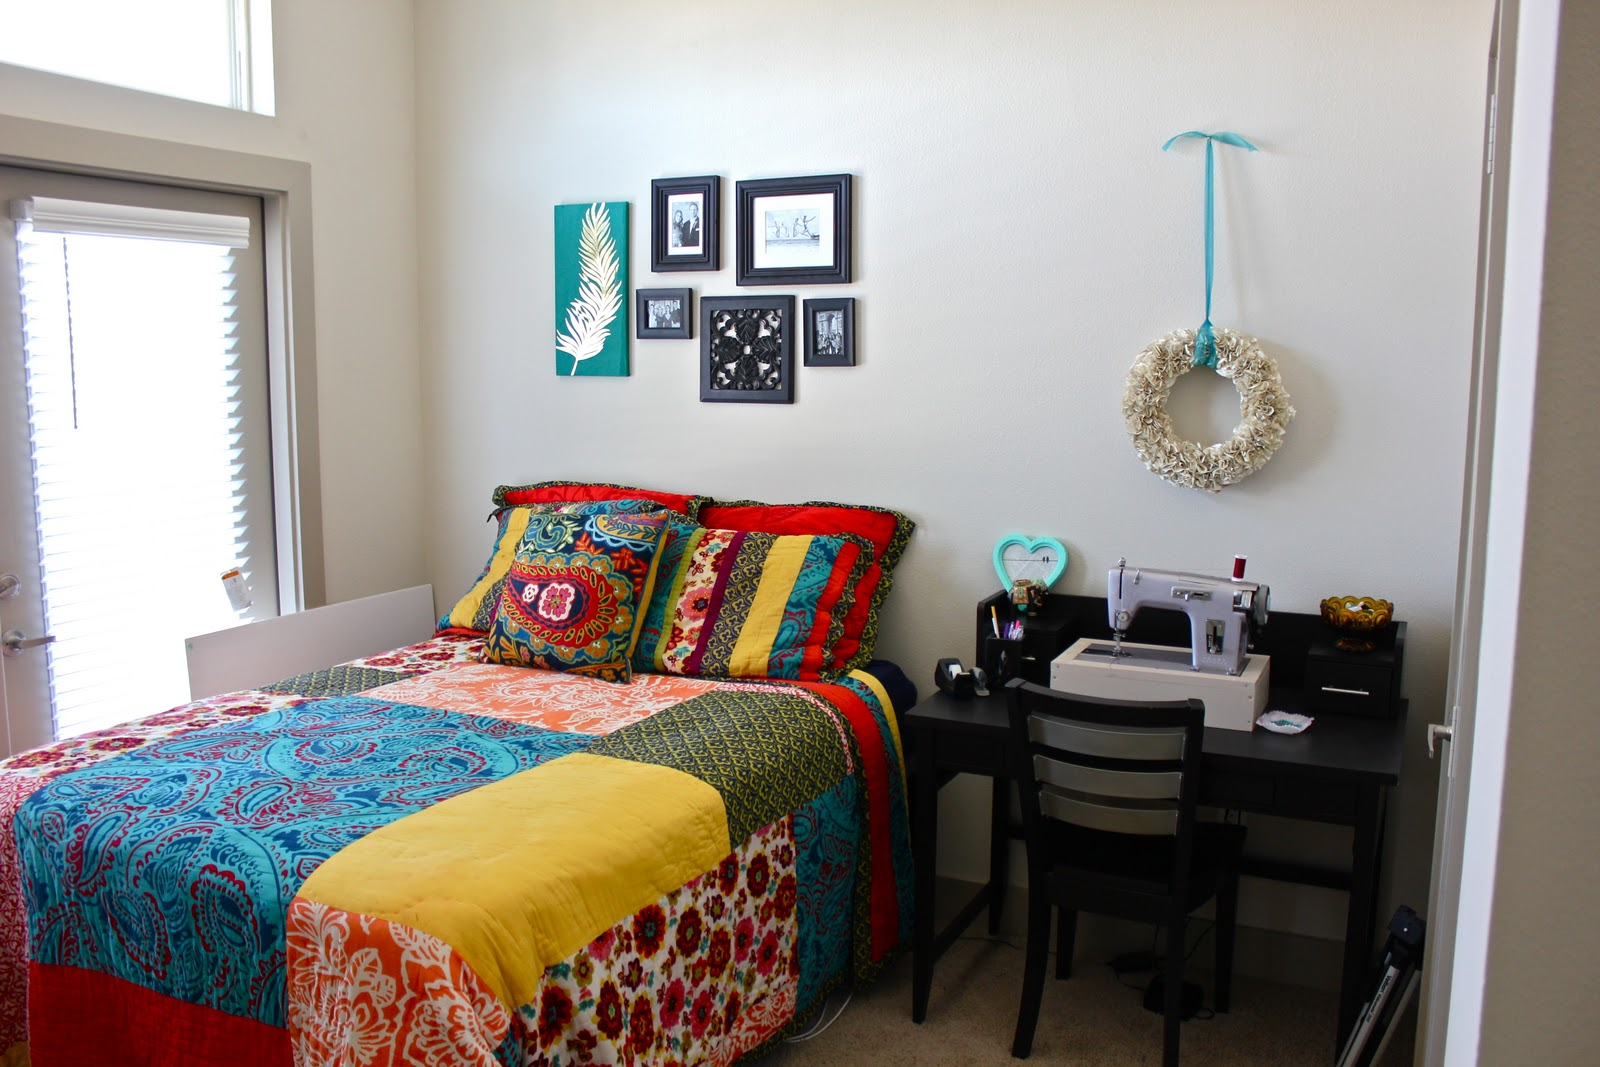 Simple apartment bedroom - College Apartment Bedroom Sweet Verbena Craft Space Tour